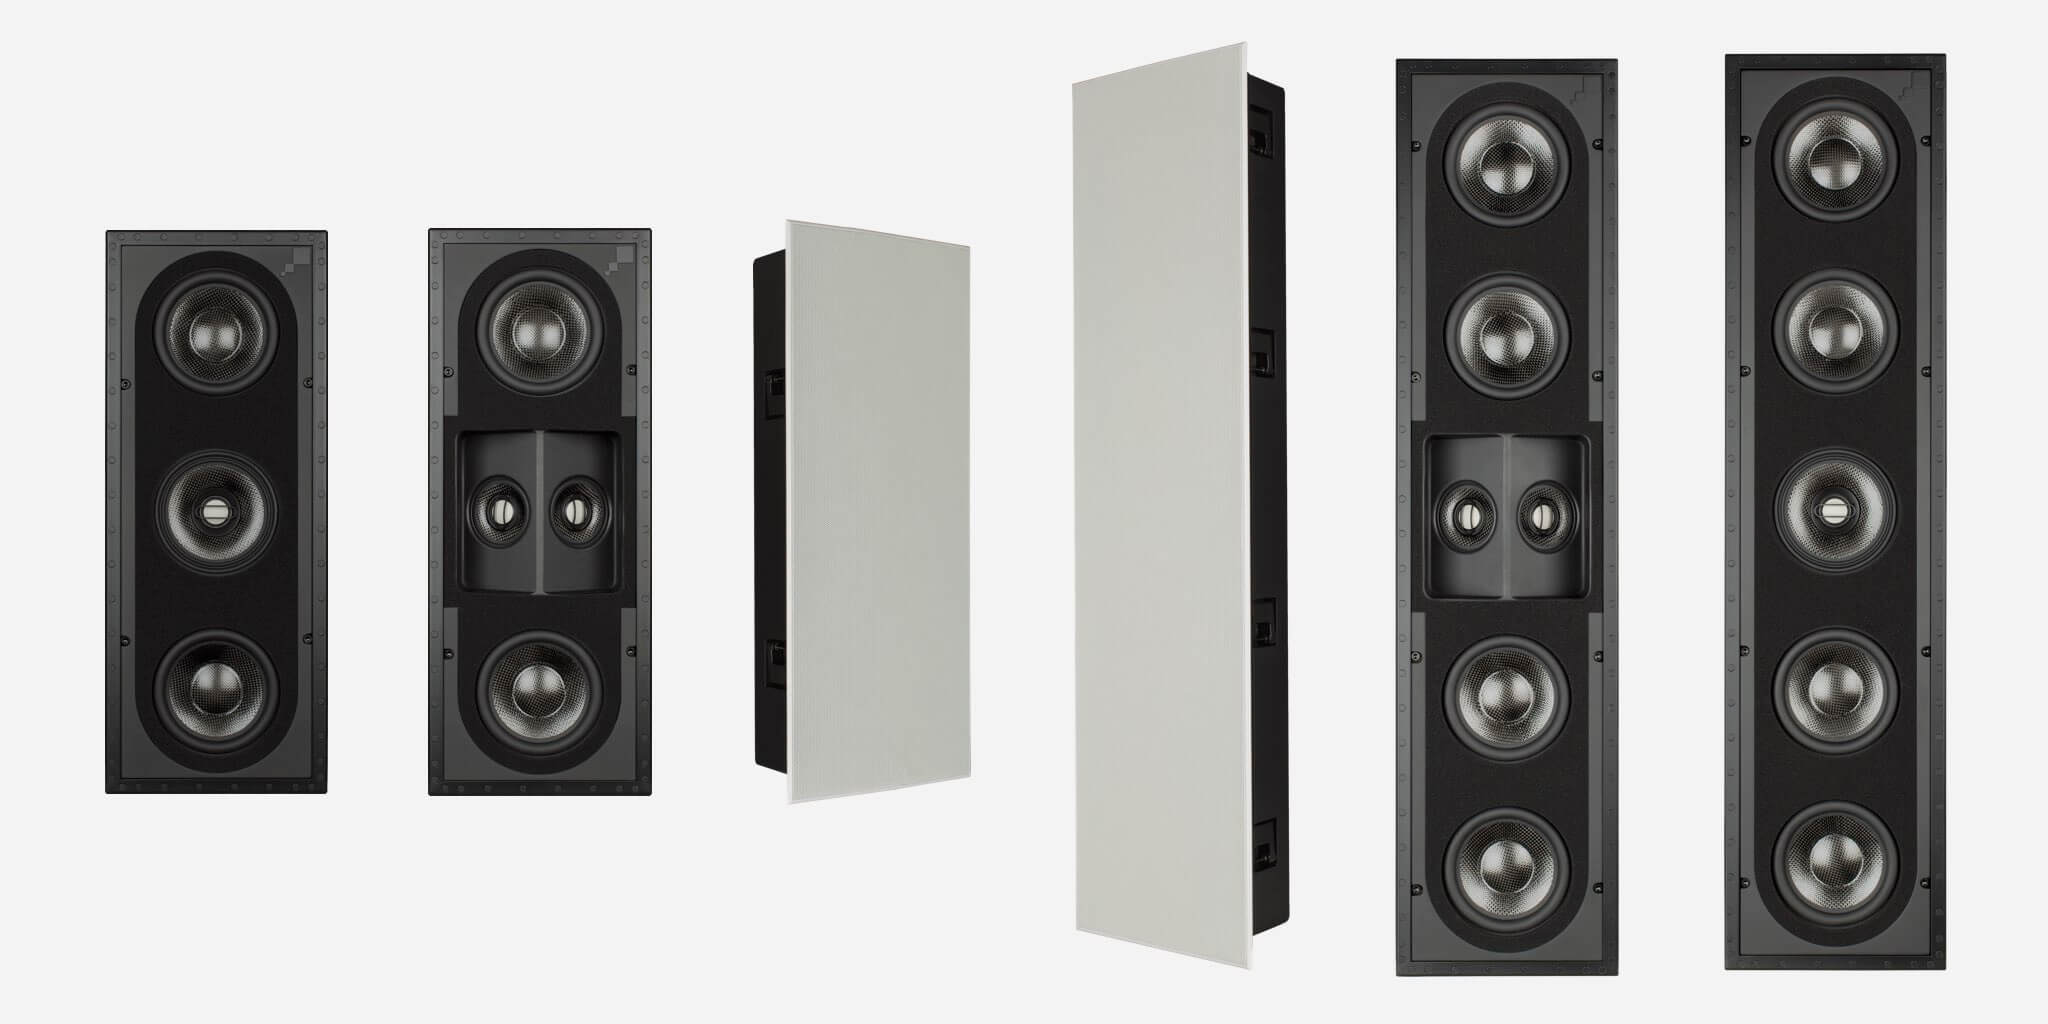 Sonance_Reference_Series_In-wall_R1_R2_All_JPEG_2048x1024_60%